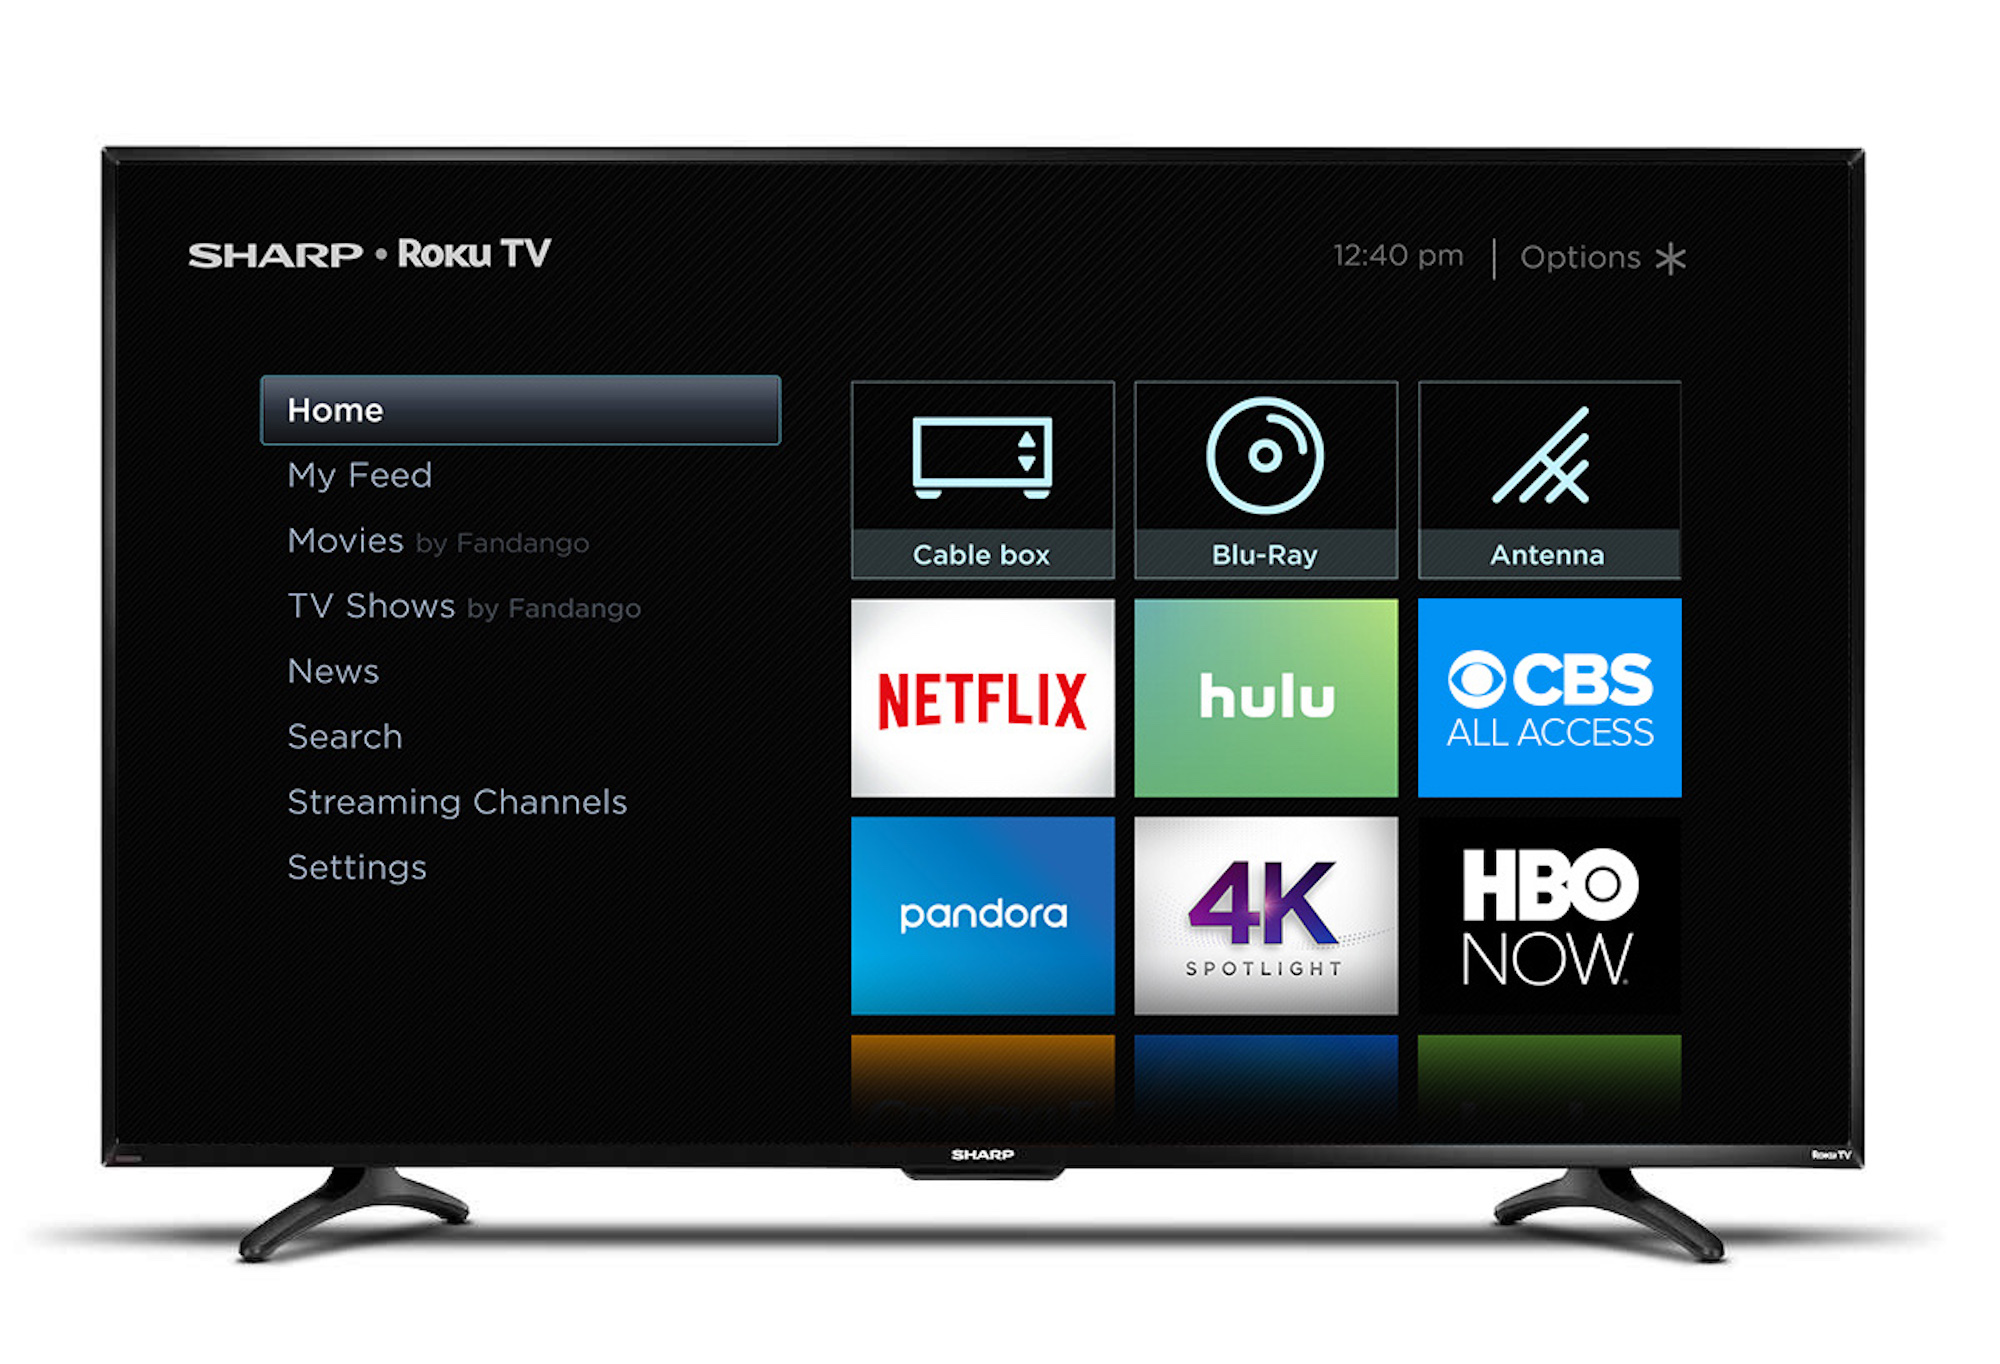 Roku's stock rose 4% on a MacRumors report of talks with Apple to integrate Airplay 2 into Roku players ahead of Apple's planned TV service.